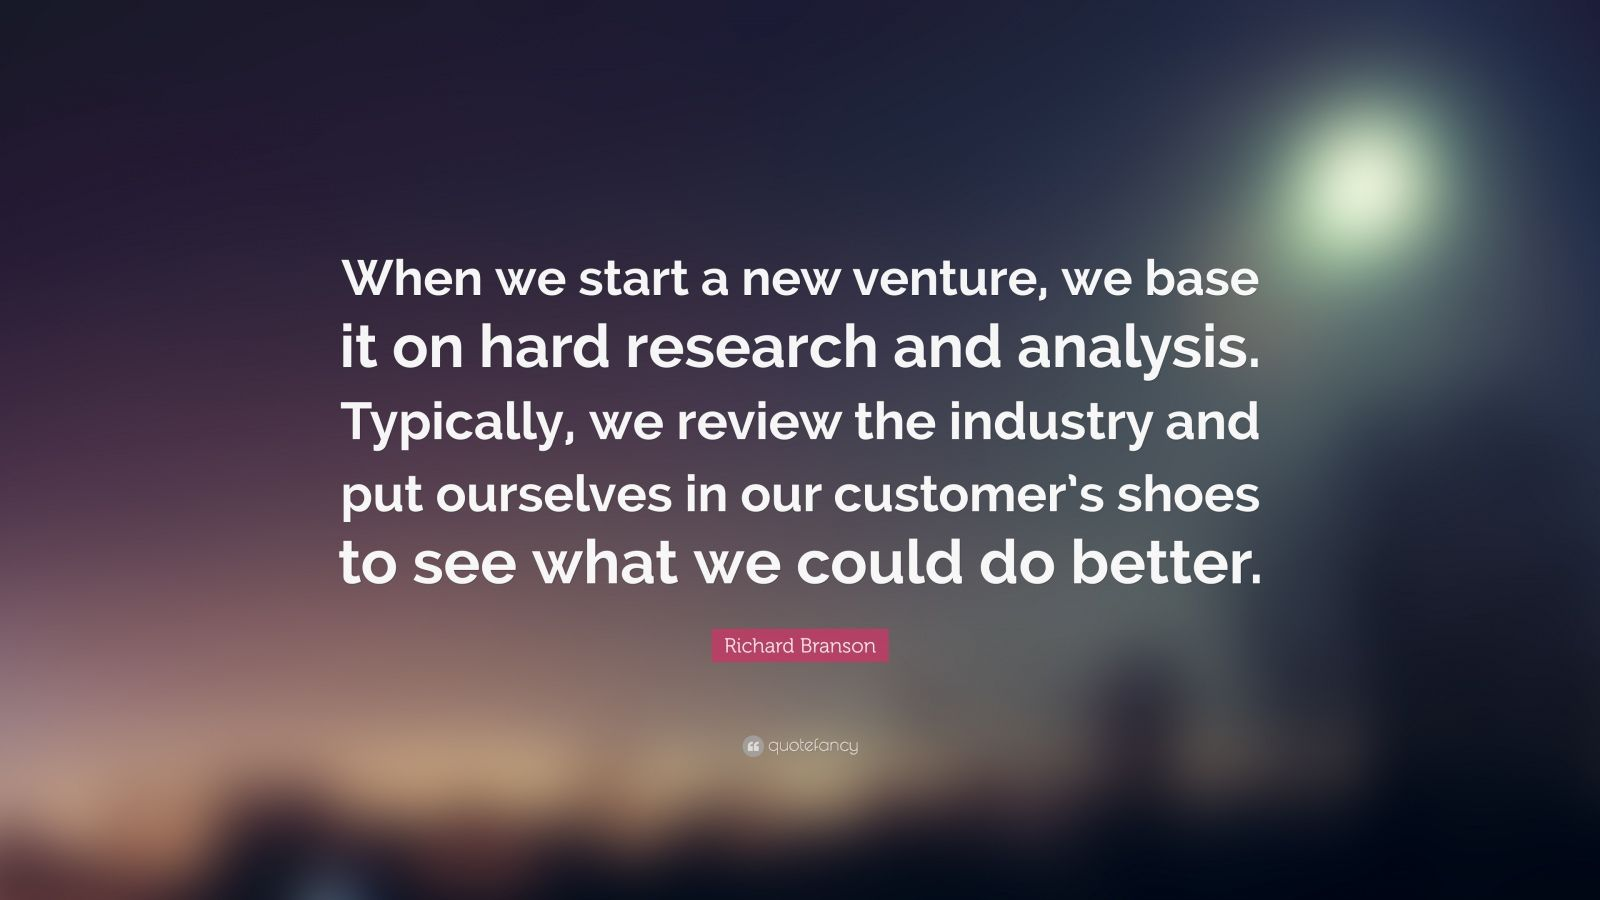 """Richard Branson Quote: """"When we start a new venture, we base it on hard research and analysis. Typically, we review the industry and put ourselves in our customer's shoes to see what we could do better."""""""